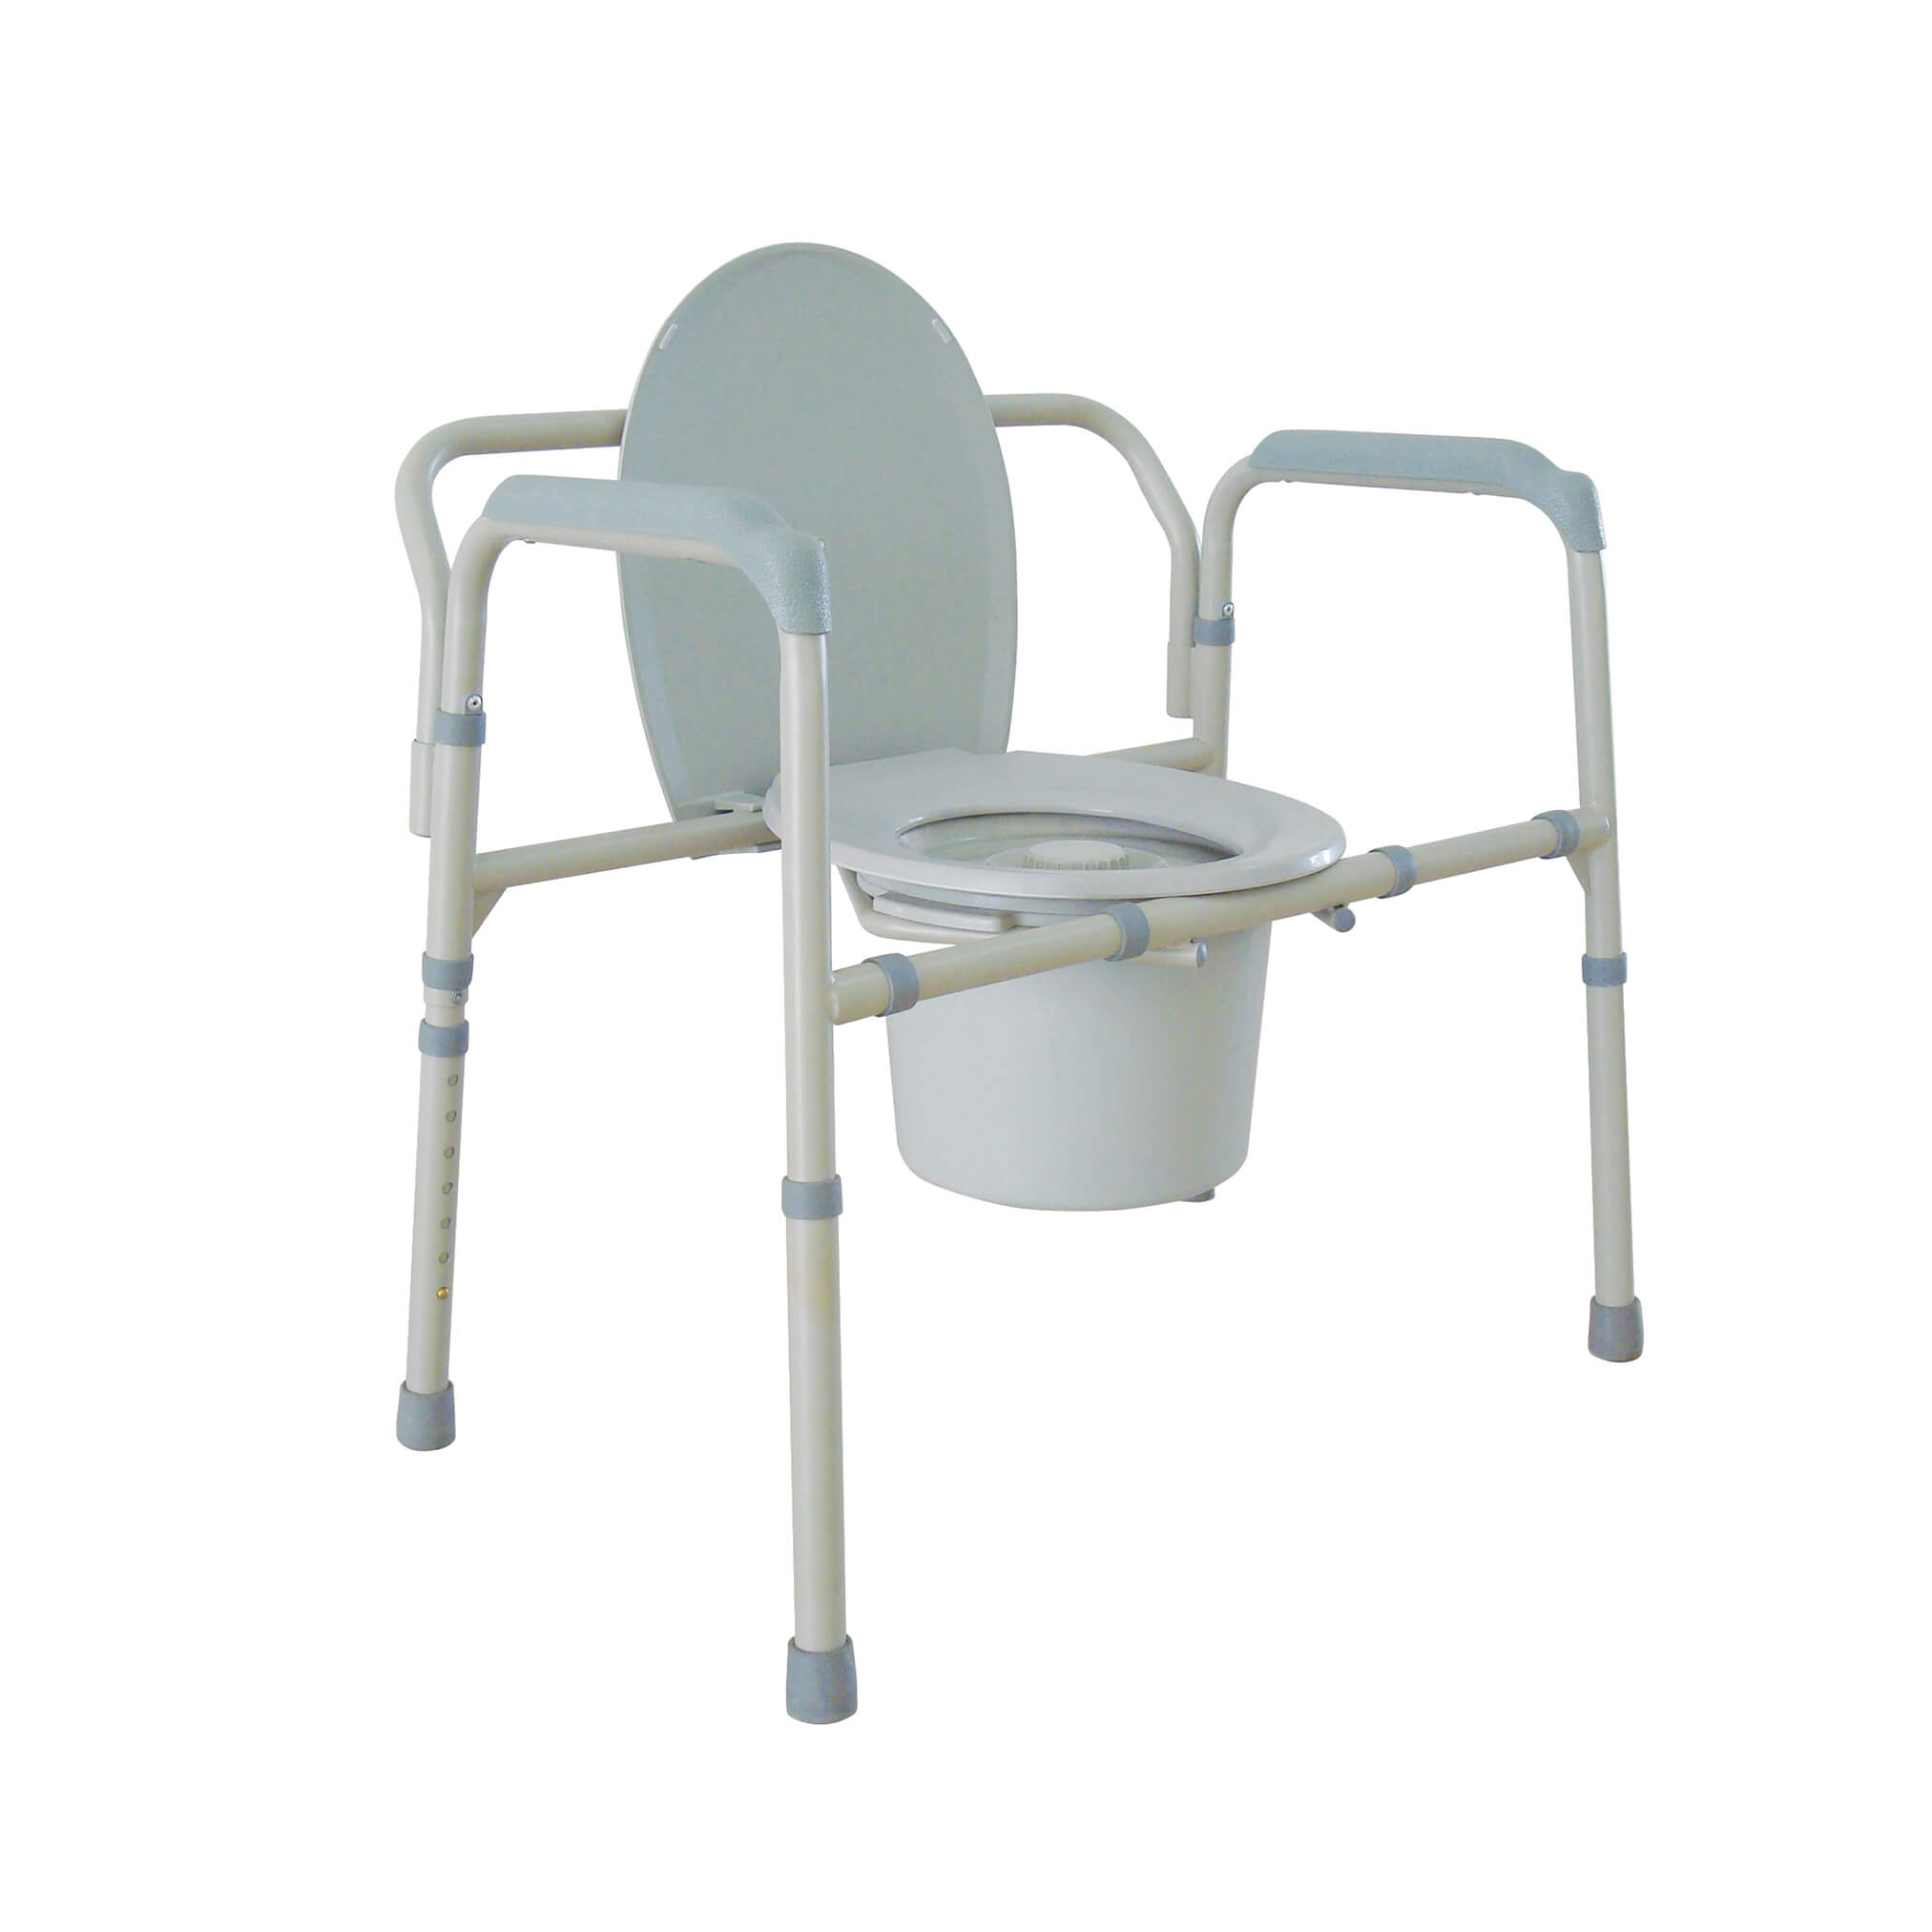 does medicare cover shower chairs chair pads with ruffles heavy duty bariatric folding bedside commode seat